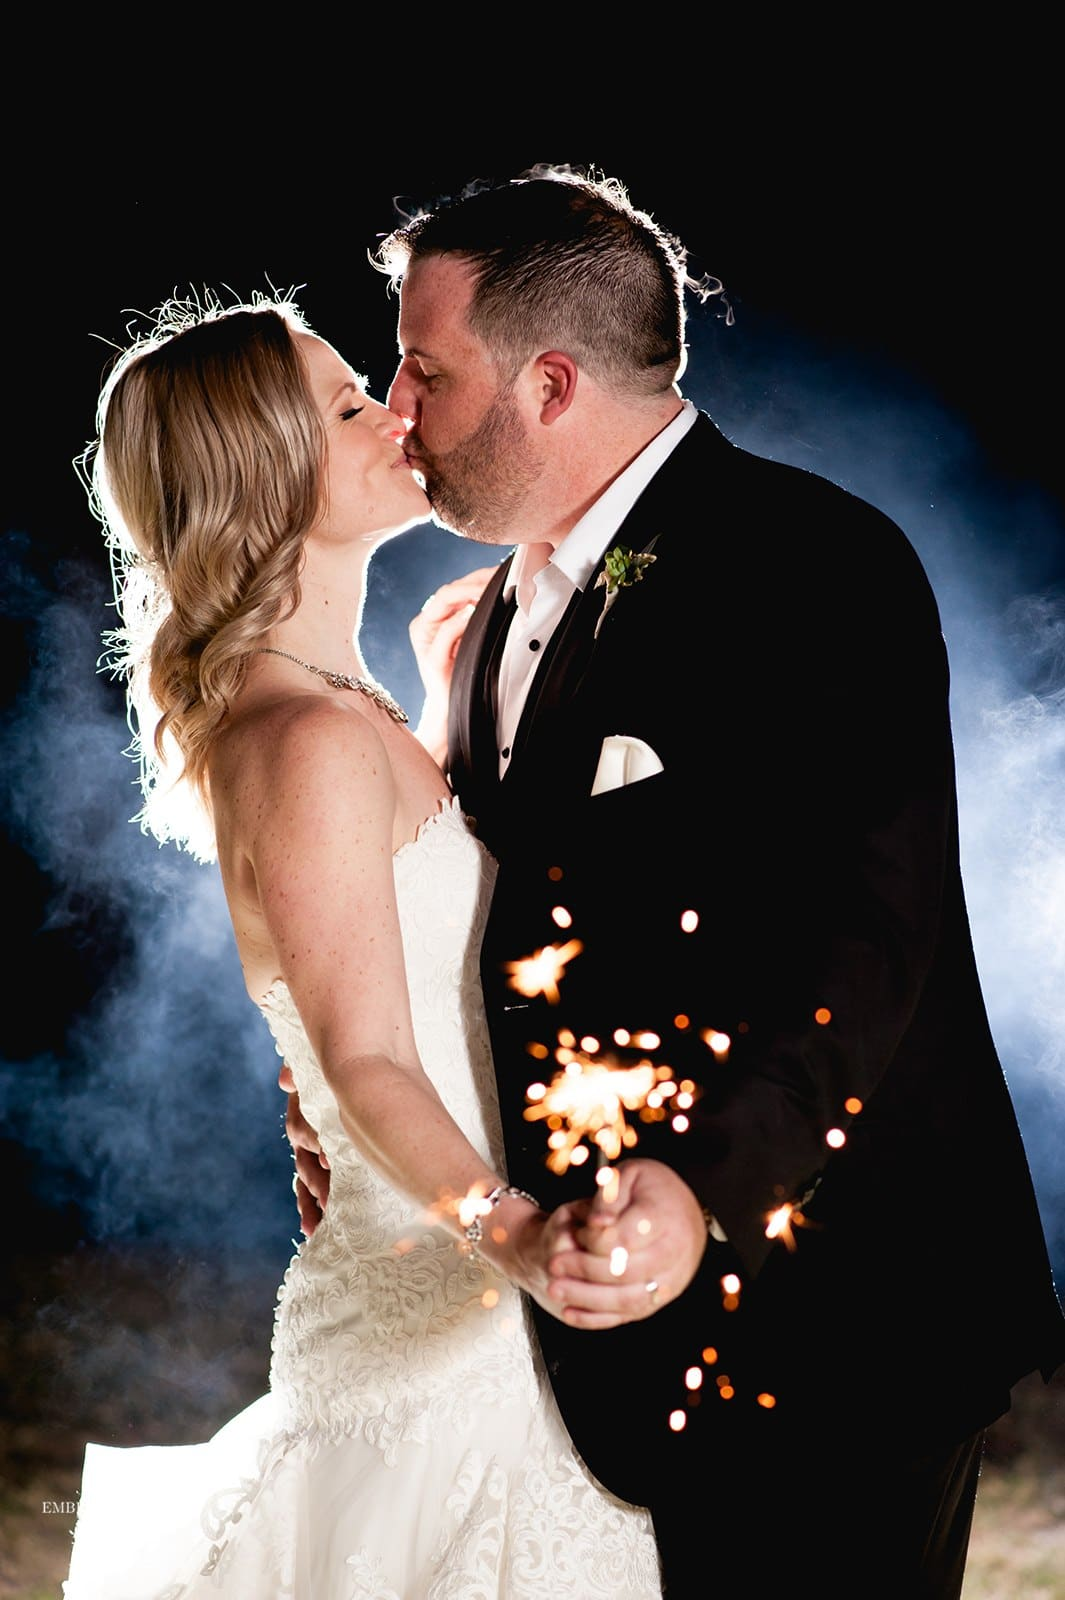 Bride and groom kissing holding shared sparkler